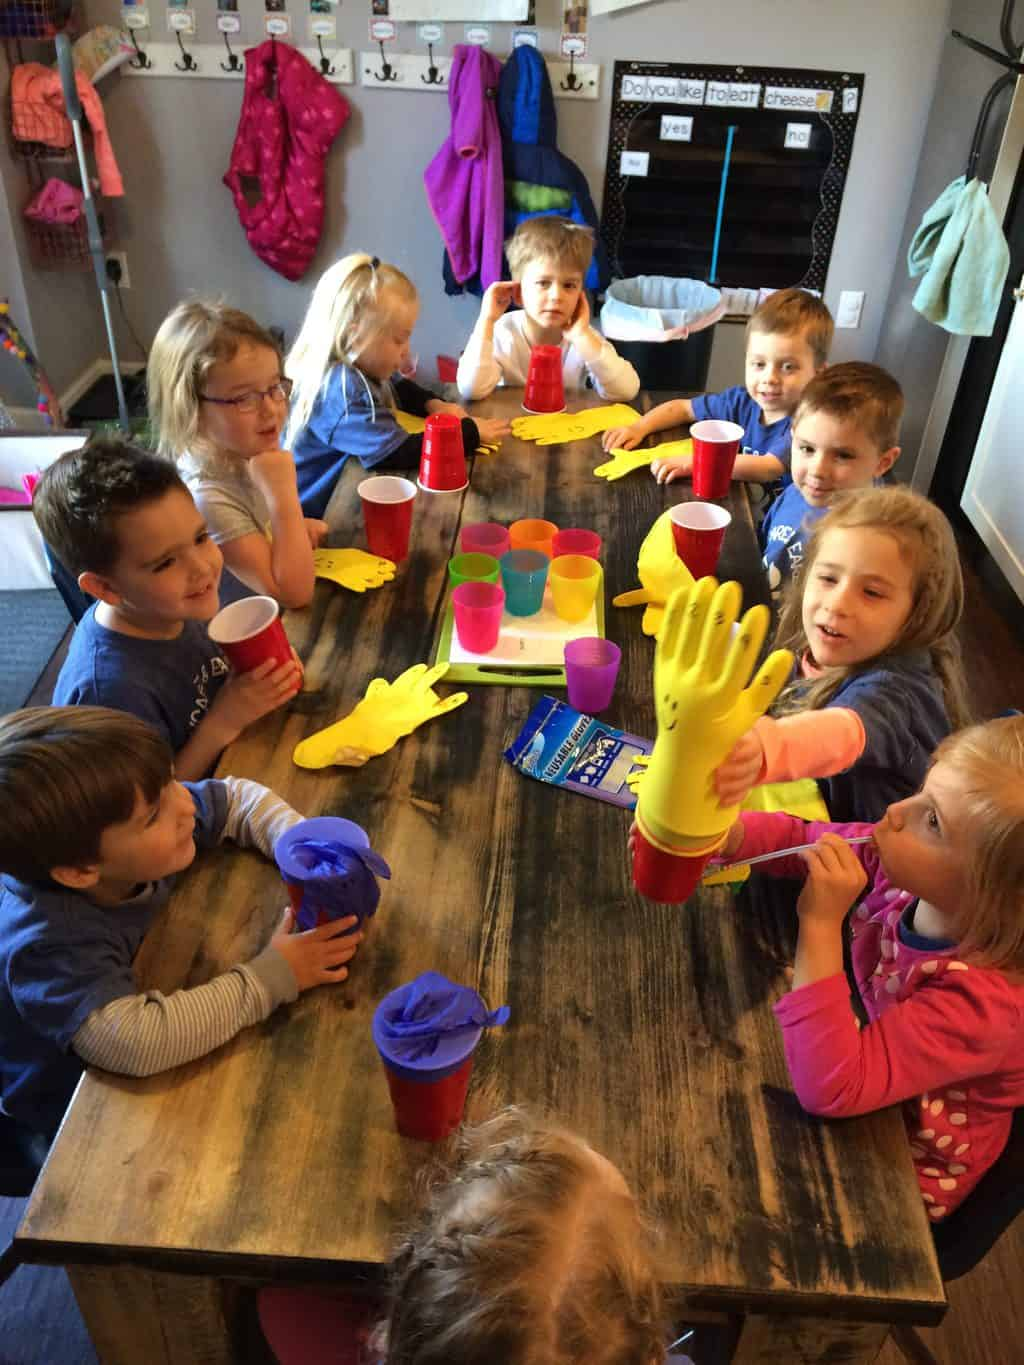 science activities for preschoolers with group of young kids making glove and cup project